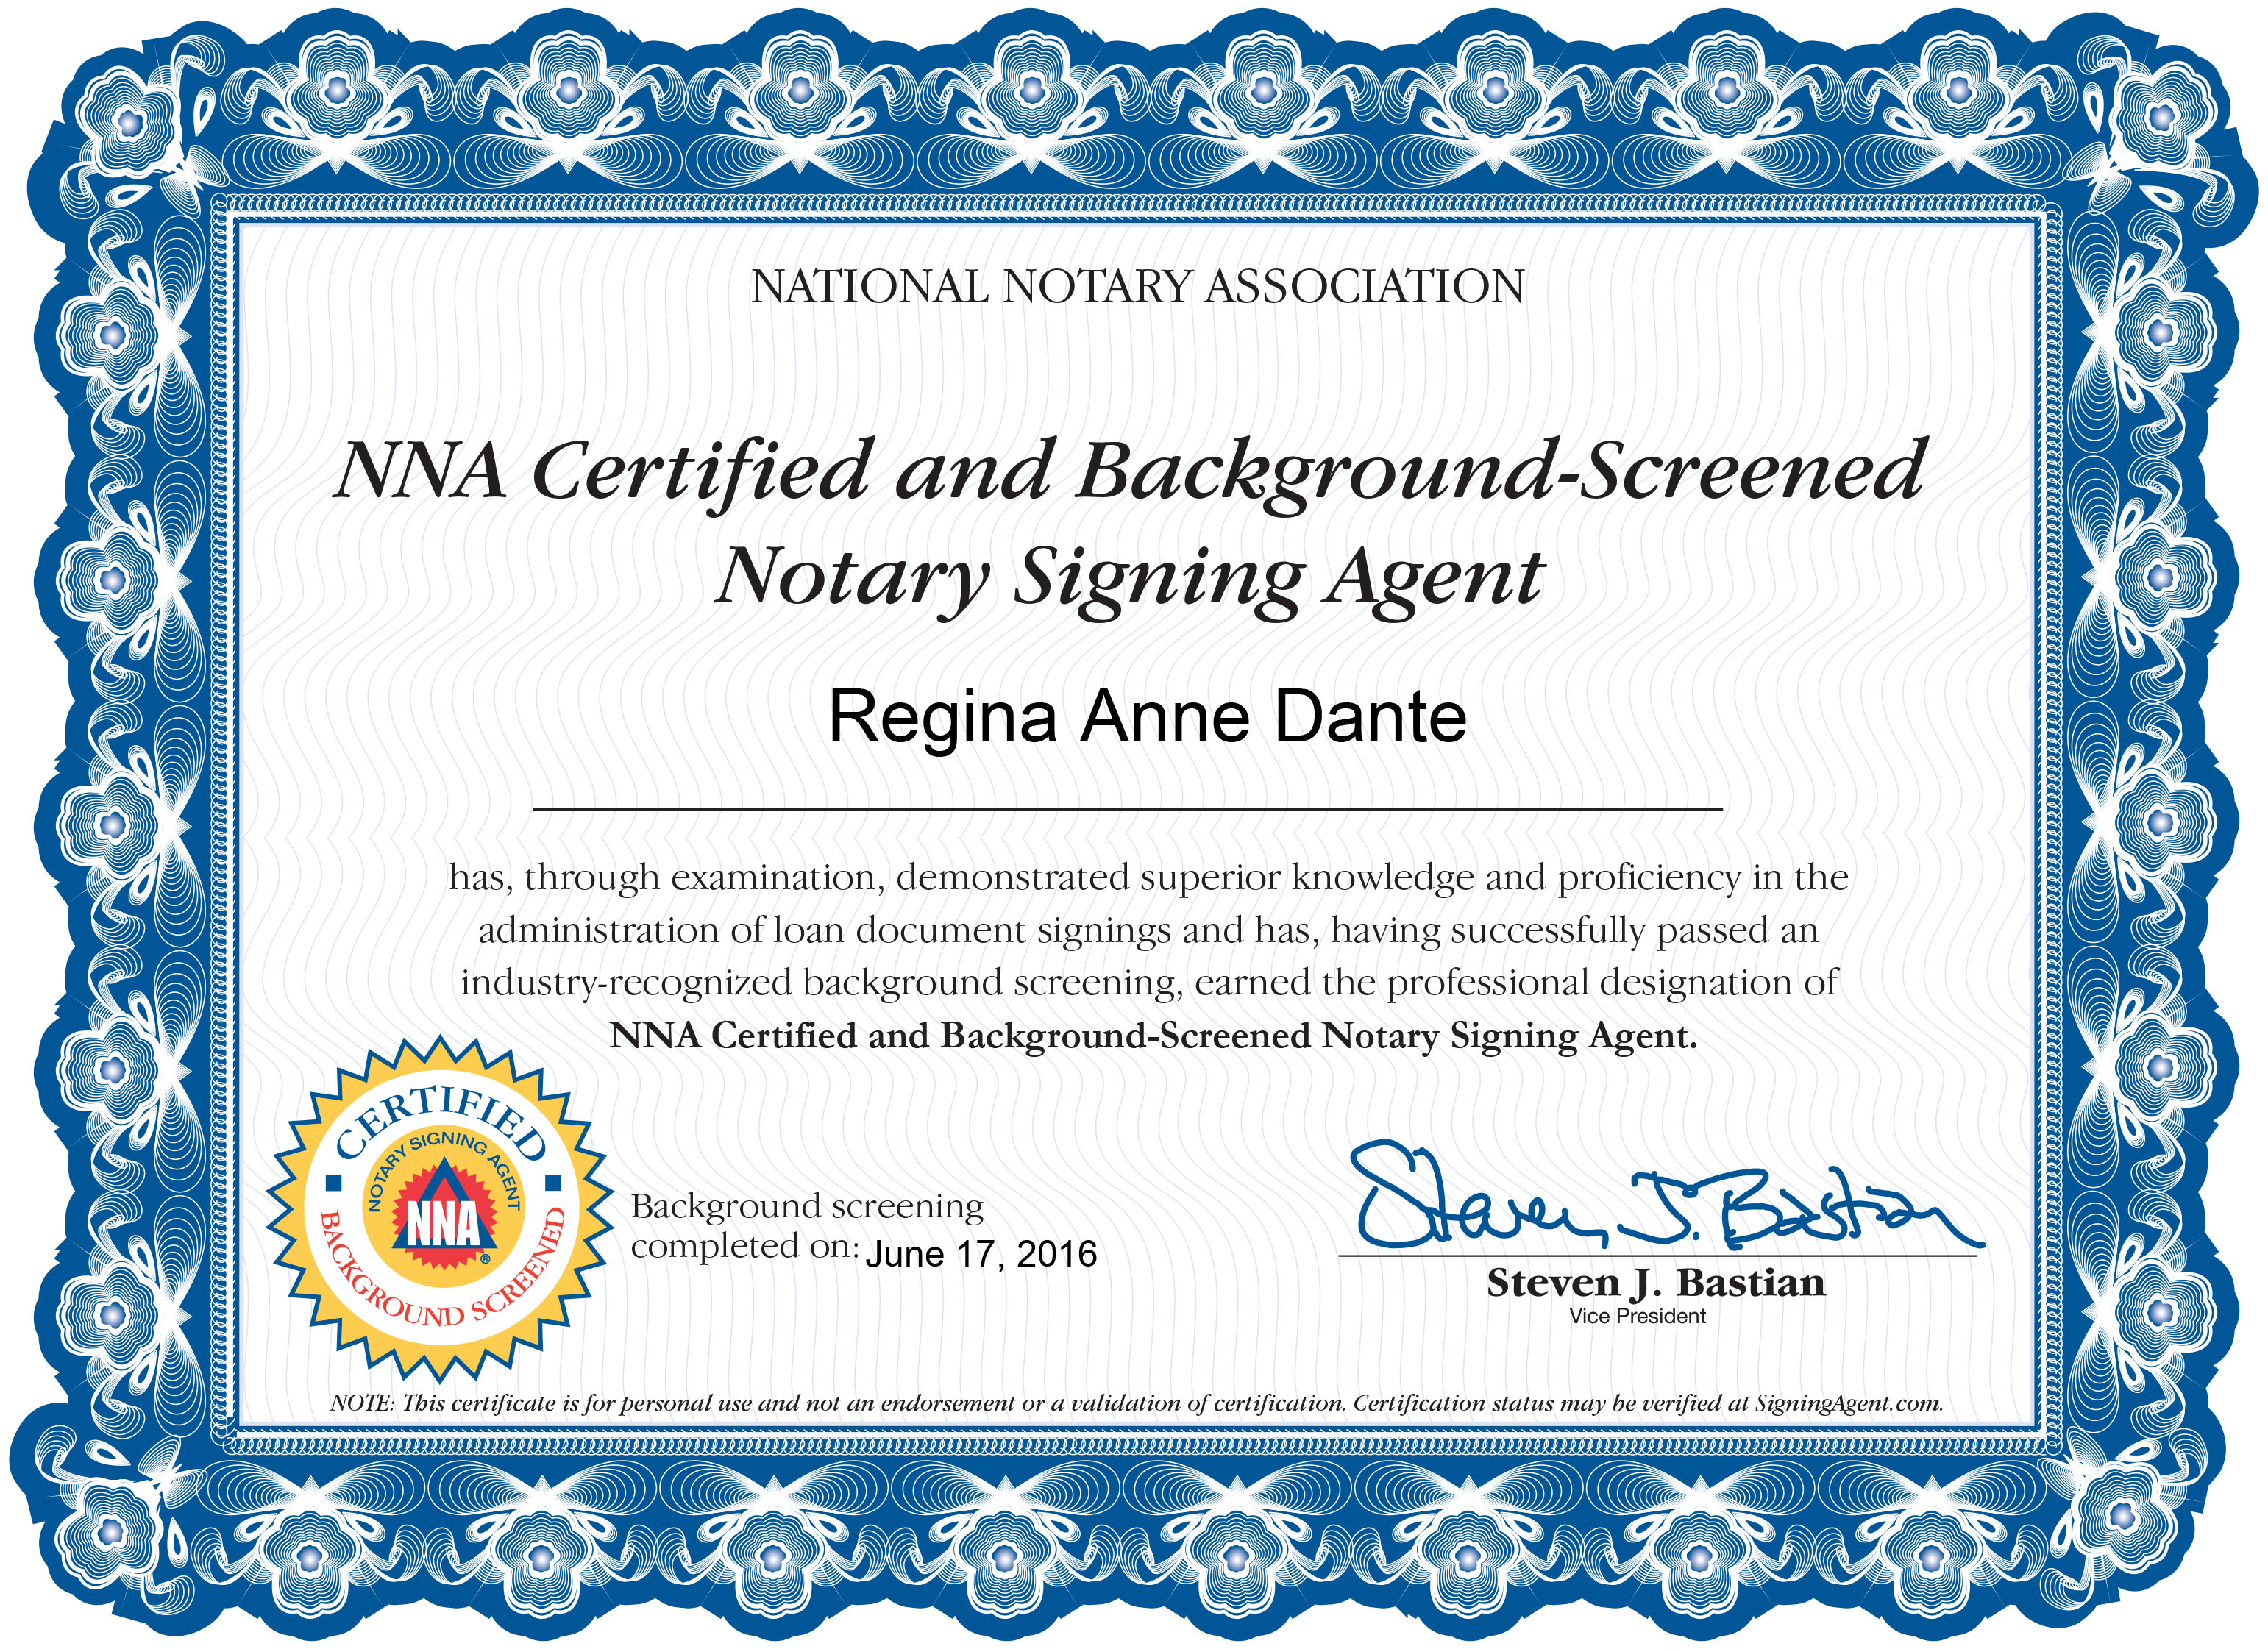 Notary Signing Agent available on call in Broward county